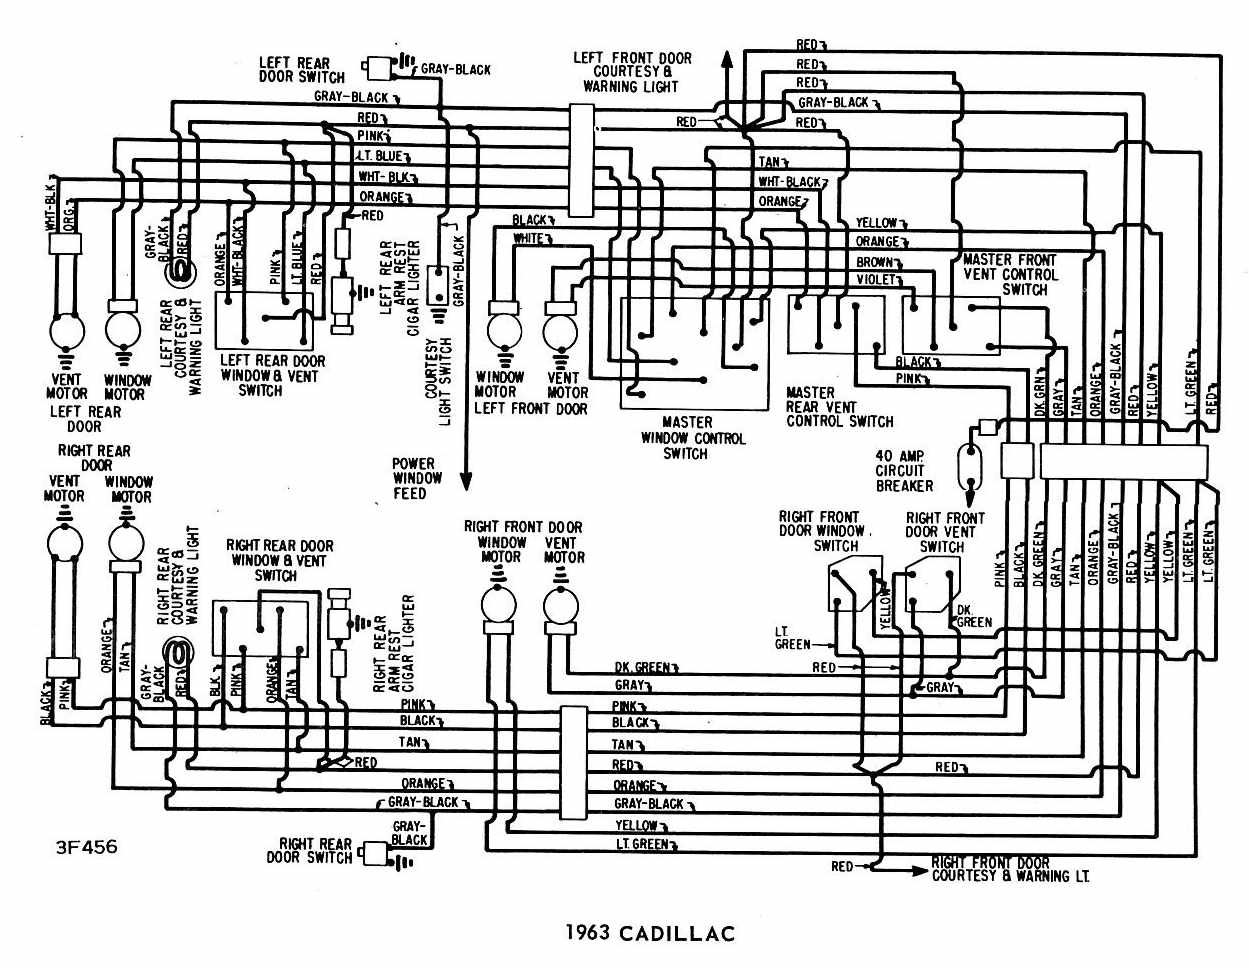 Cadillac+1963+Windows+Wiring+Diagram cadillac 1963 windows wiring diagram all about wiring diagrams 63 falcon wiring diagram at gsmx.co